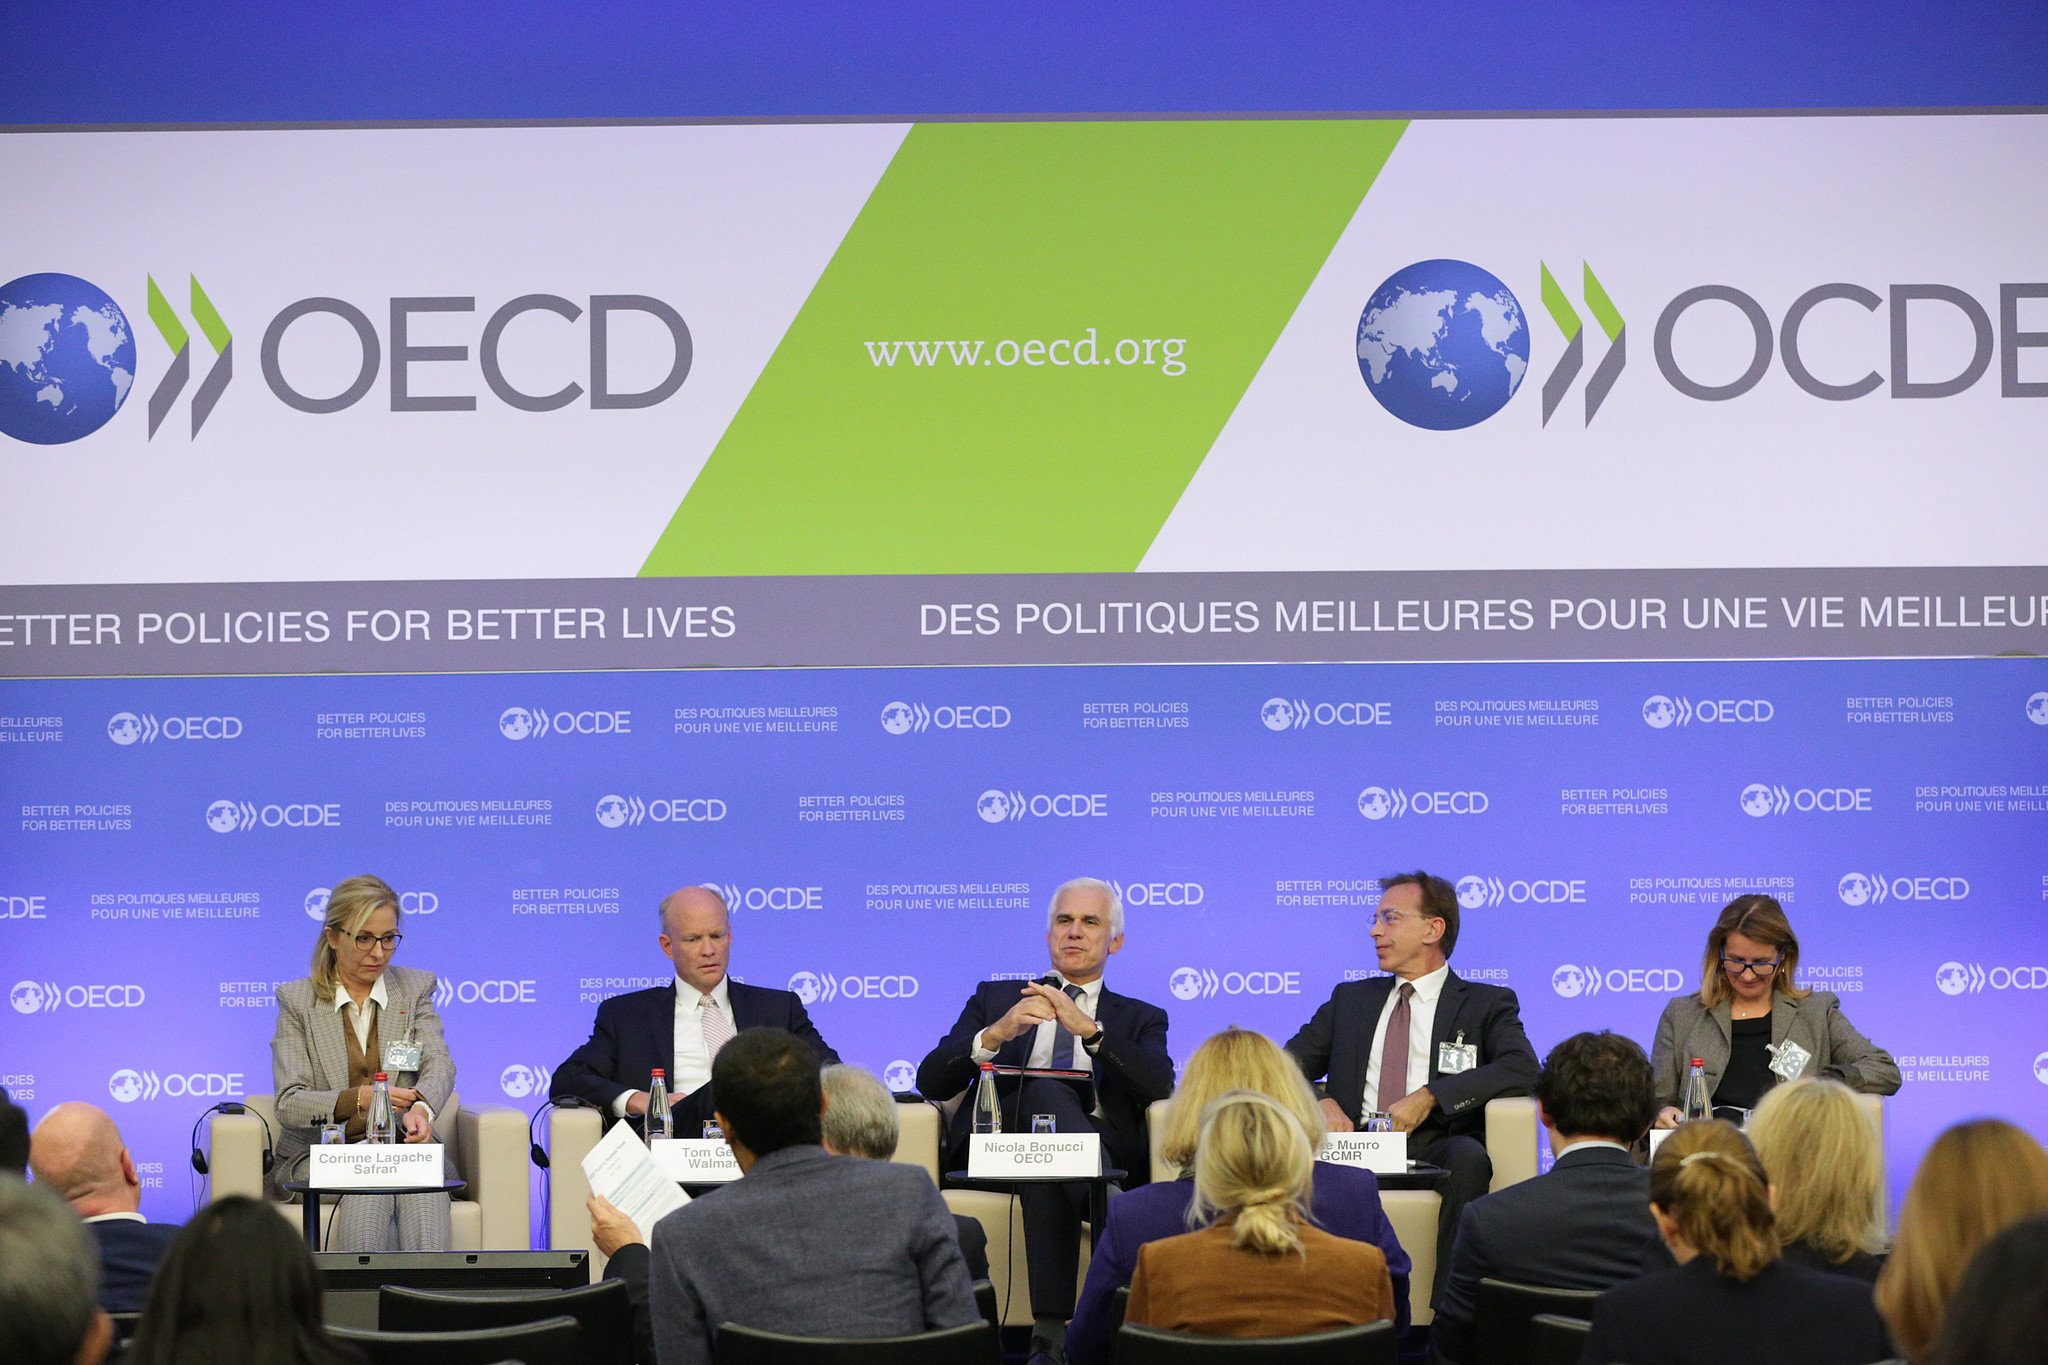 OECD Trust in Business Forum 2019